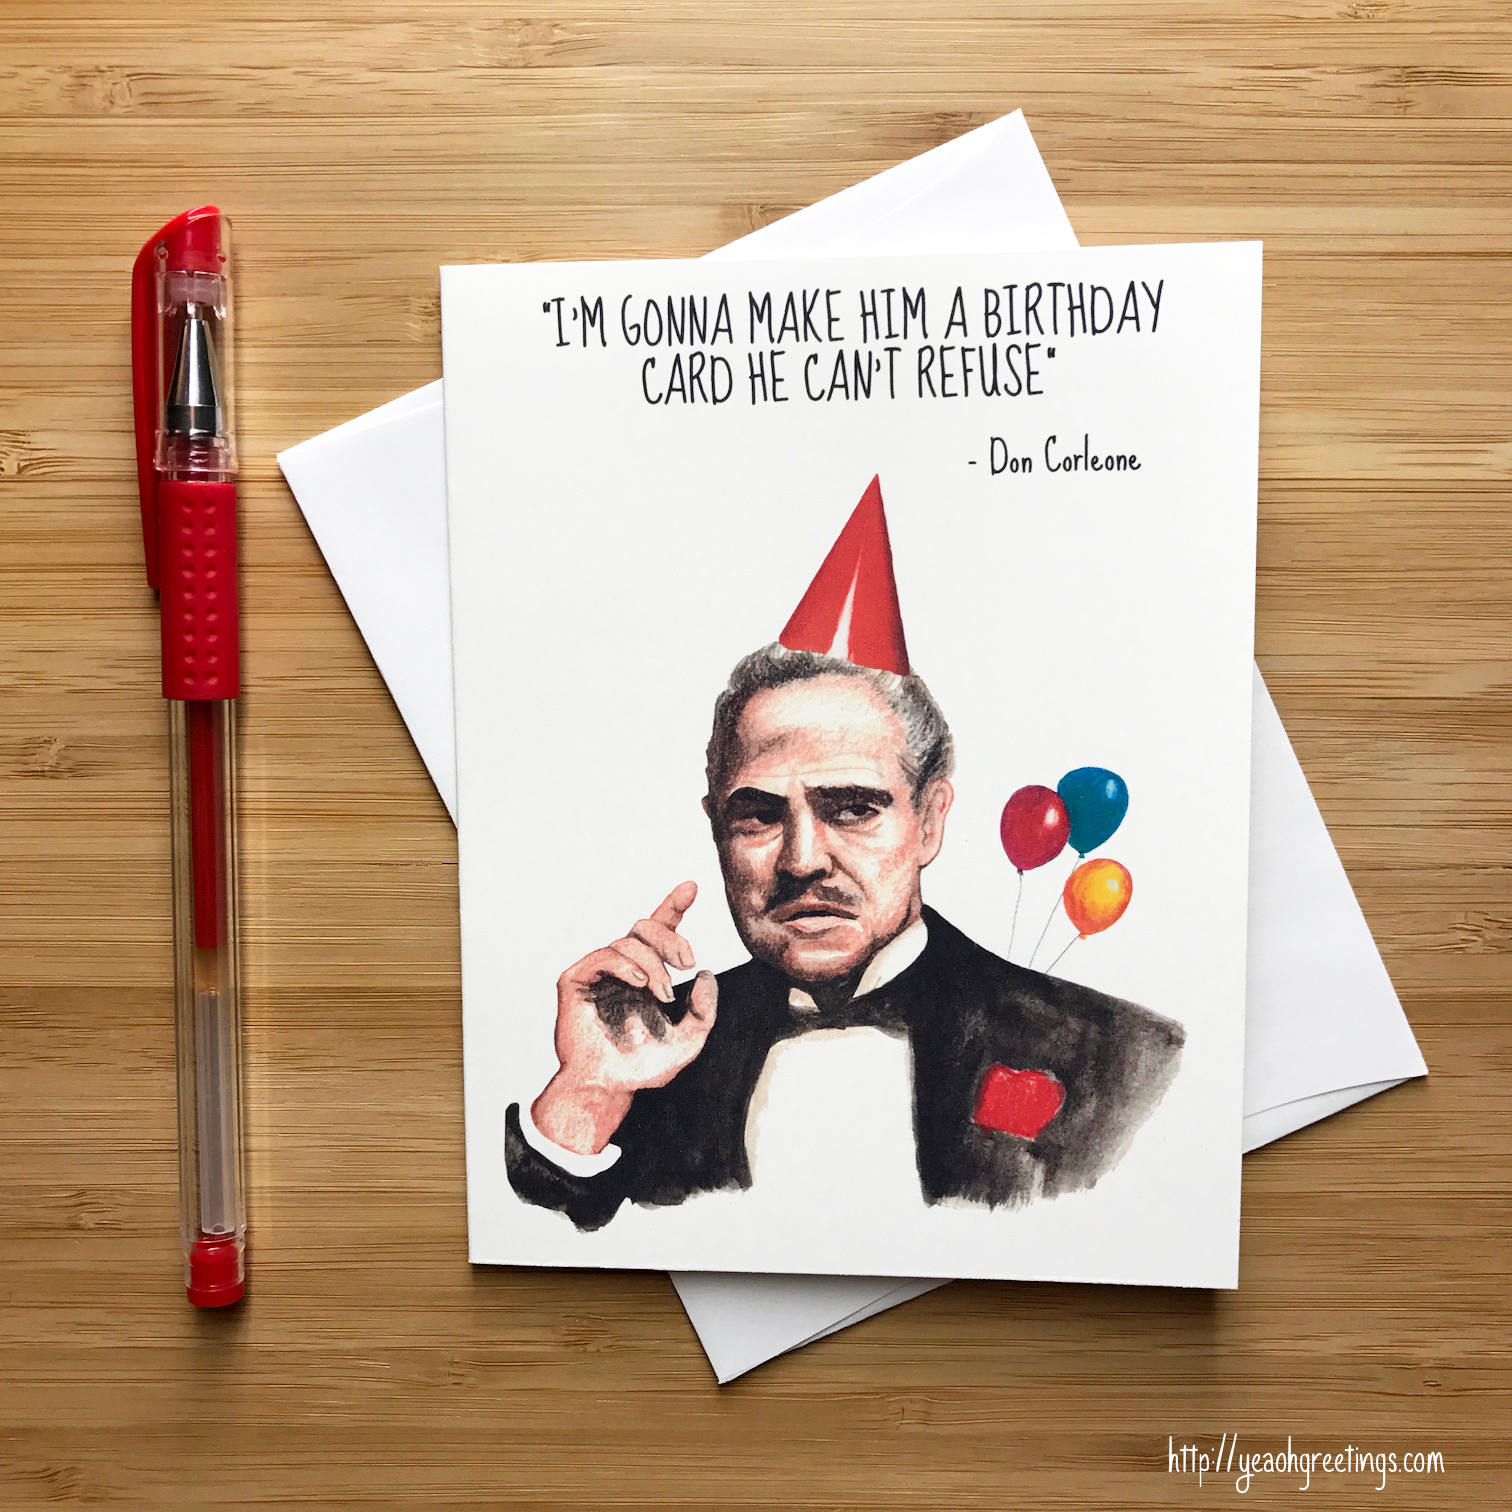 Godfather Birthday Card Don Corleone Quotes Movie Geeks